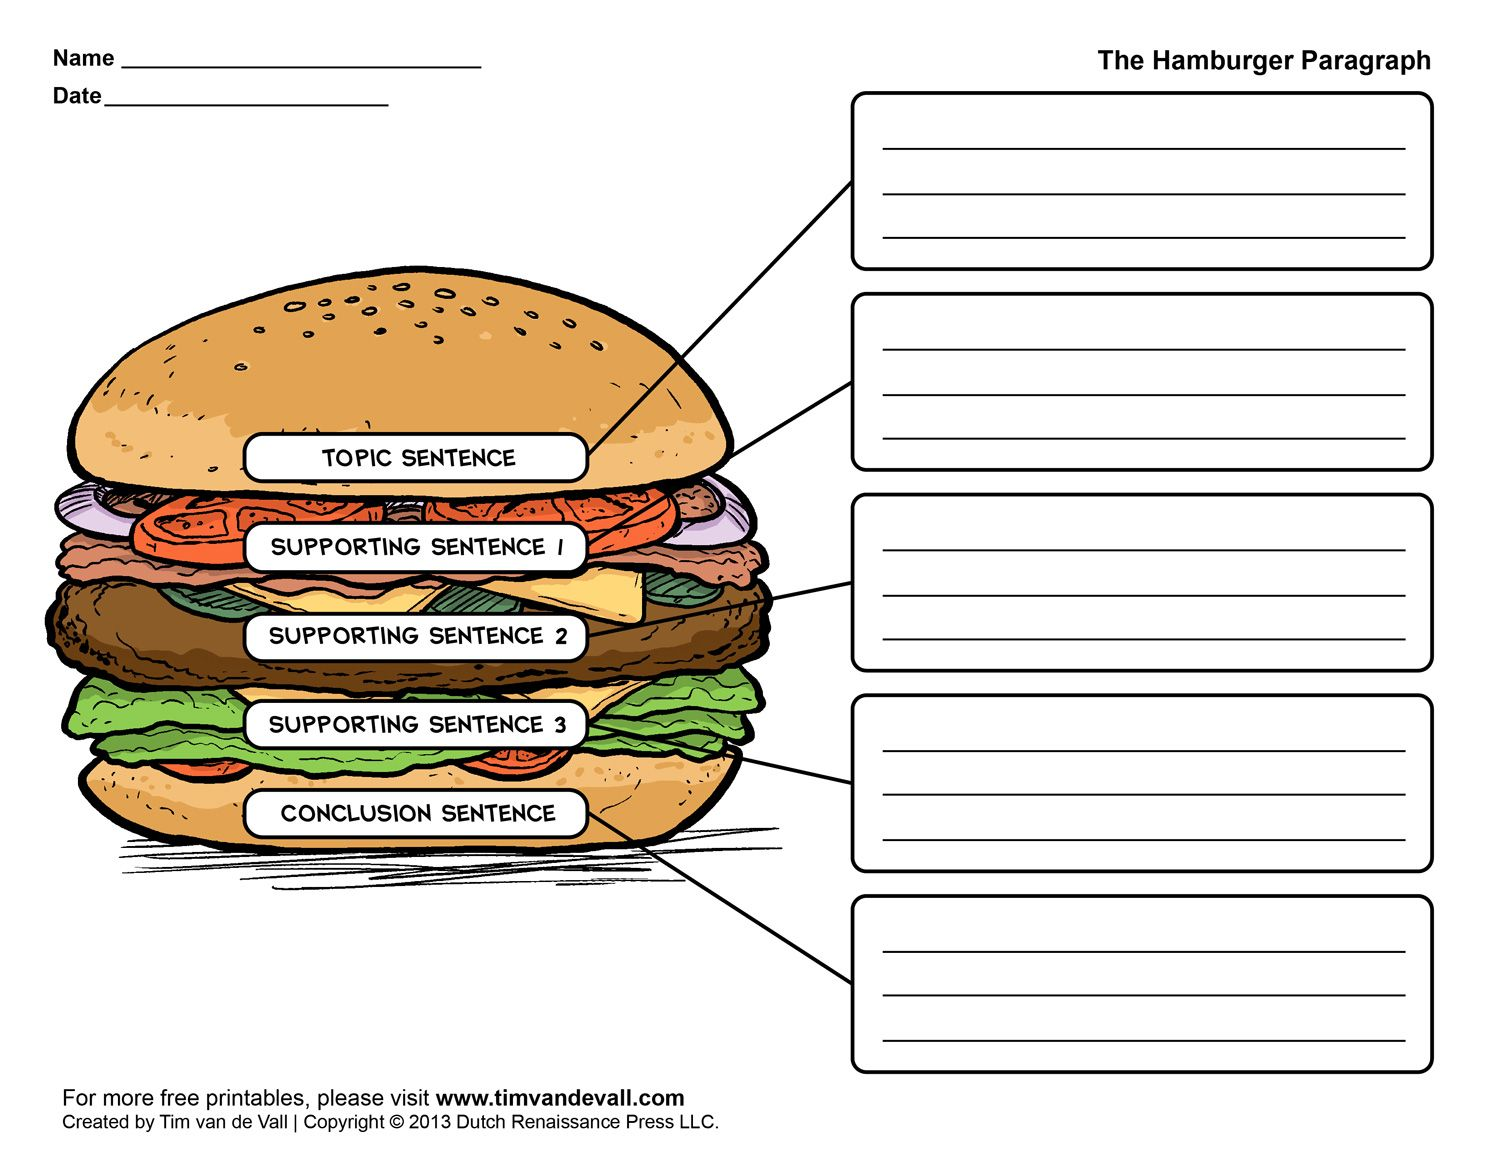 hamburger paragraph worksheet language arts printables literacy resources pinterest. Black Bedroom Furniture Sets. Home Design Ideas